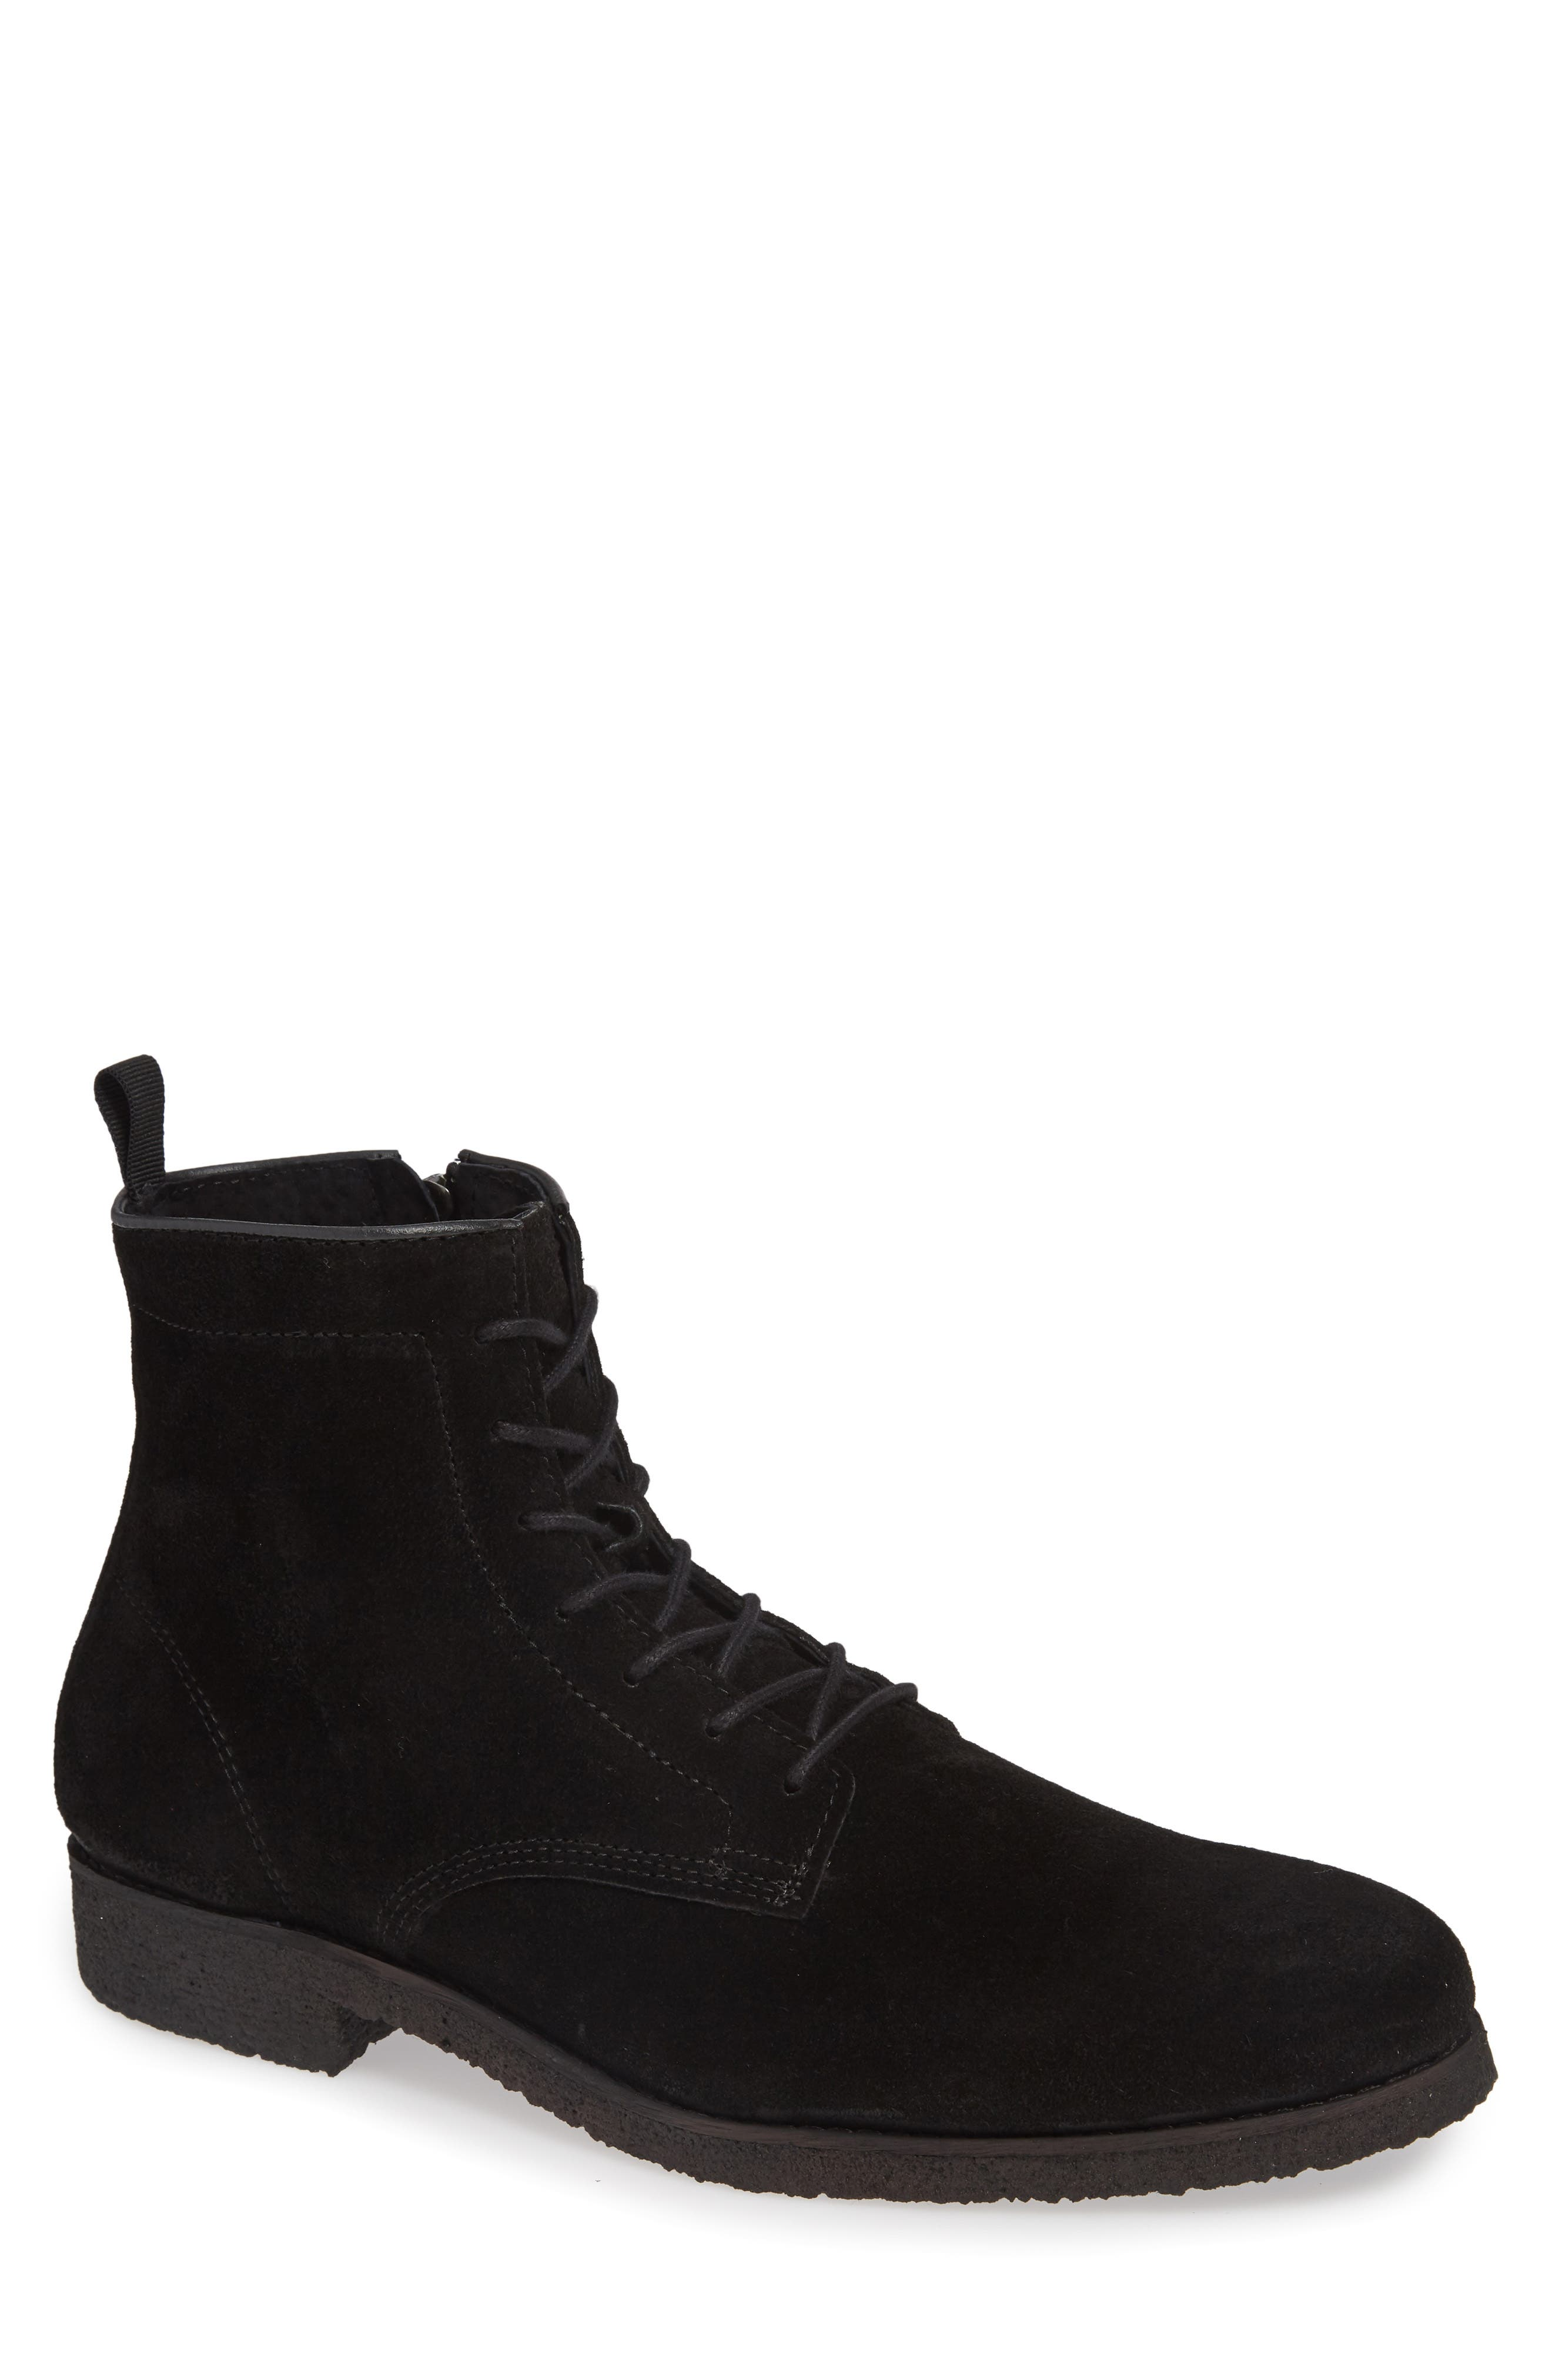 SUPPLY LAB Jonah Plain Toe Boot in Black Suede